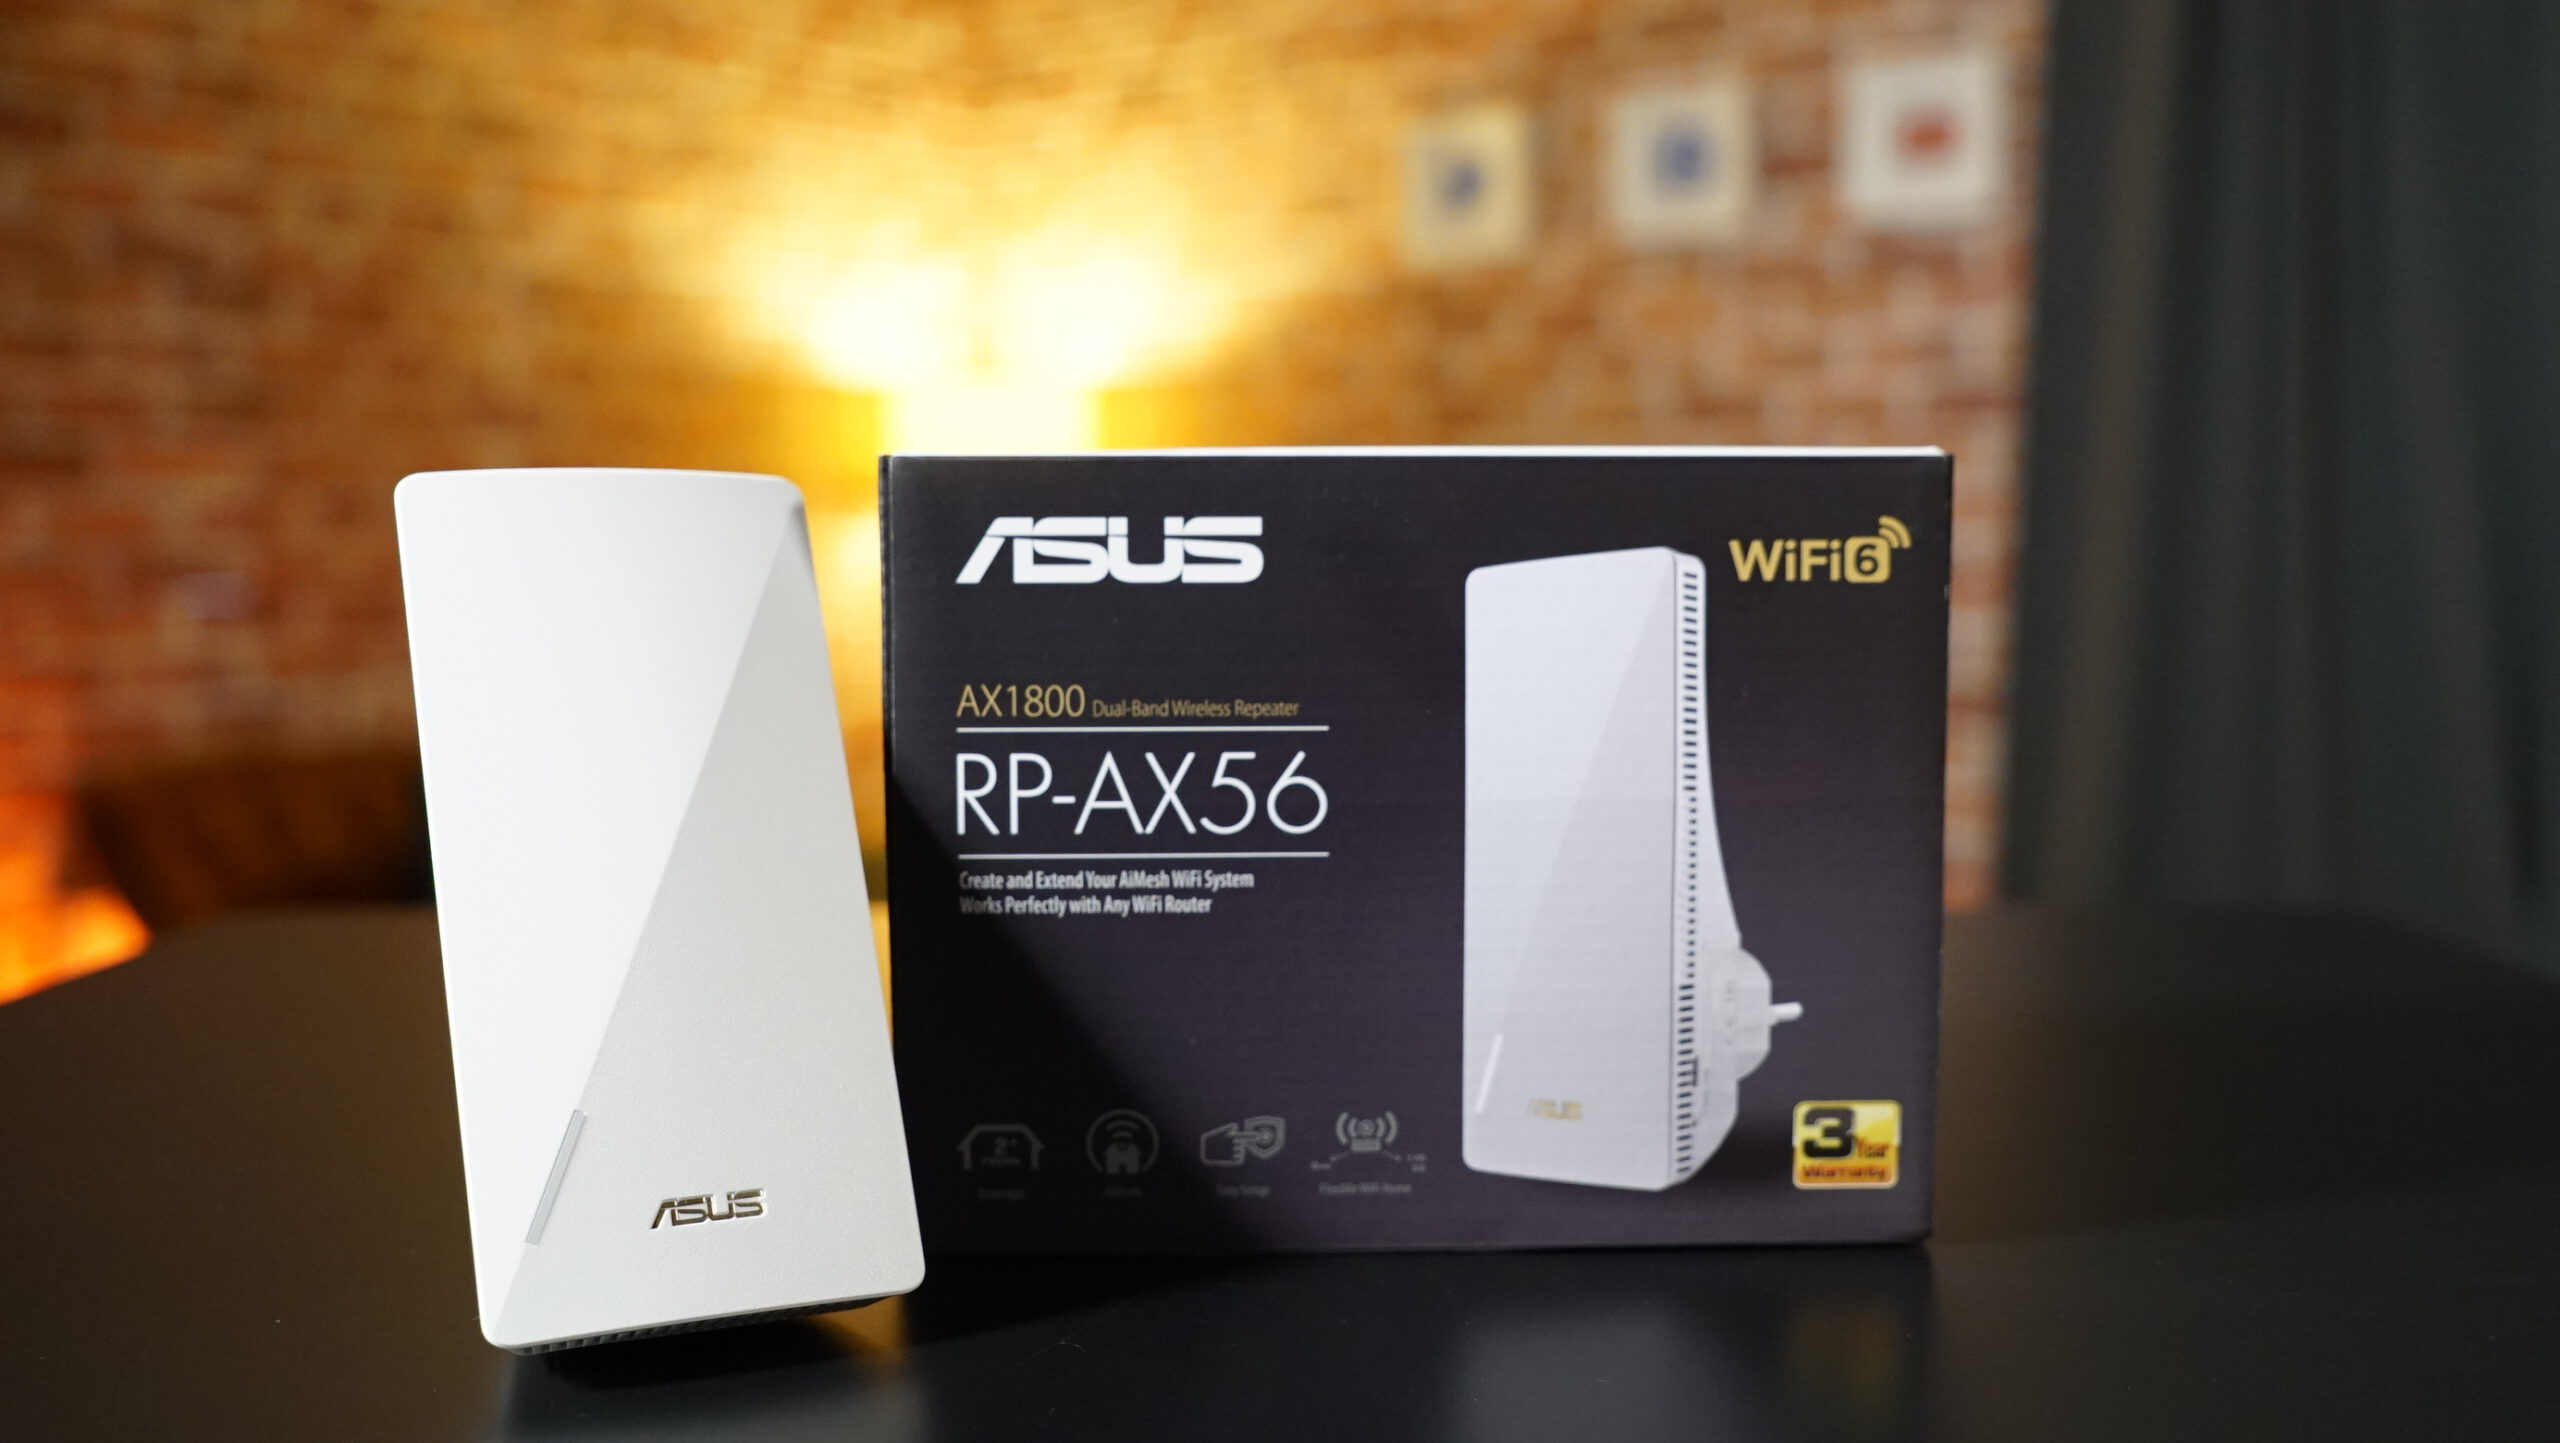 Asus RP-AX56